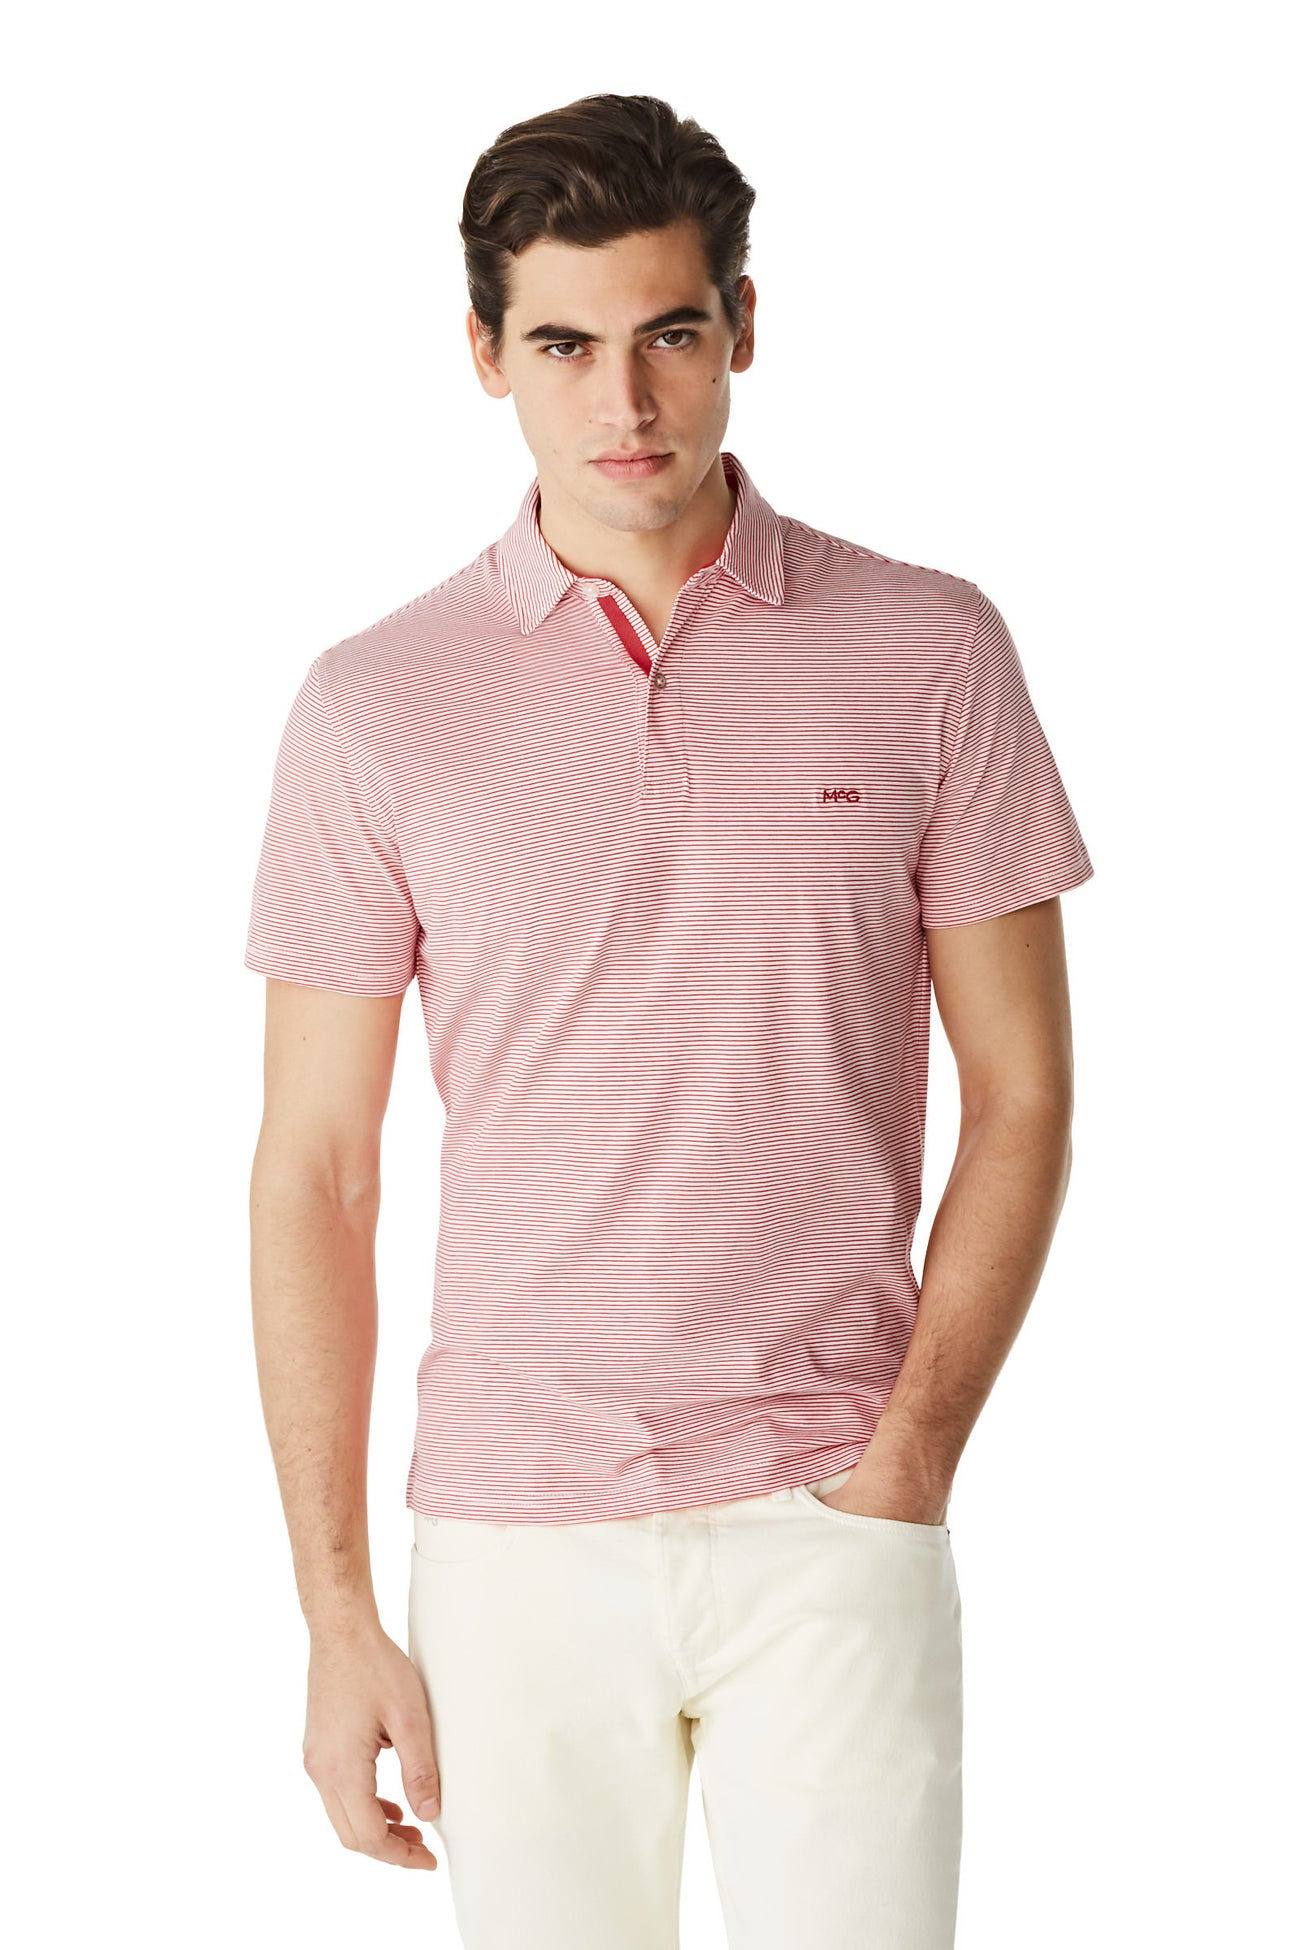 McG Regular fit jersey polo with stripes